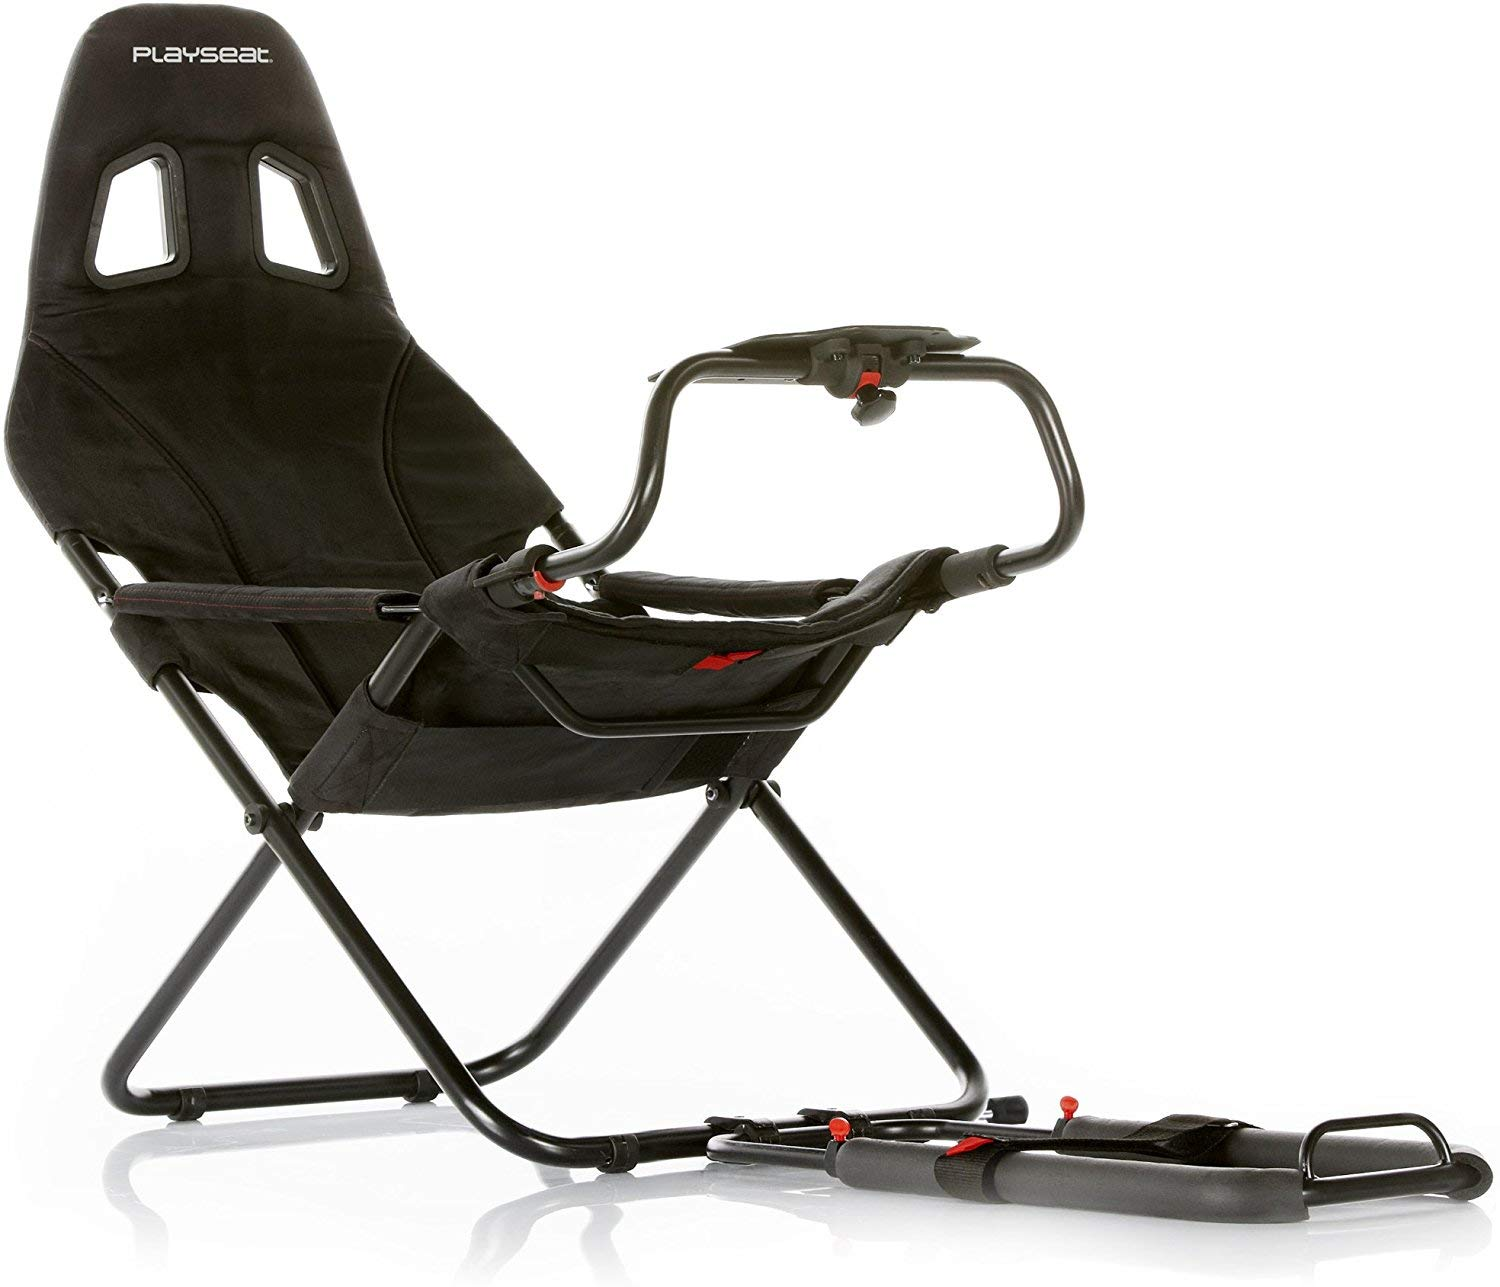 Playseat Challenge by Playseat (Image #1)